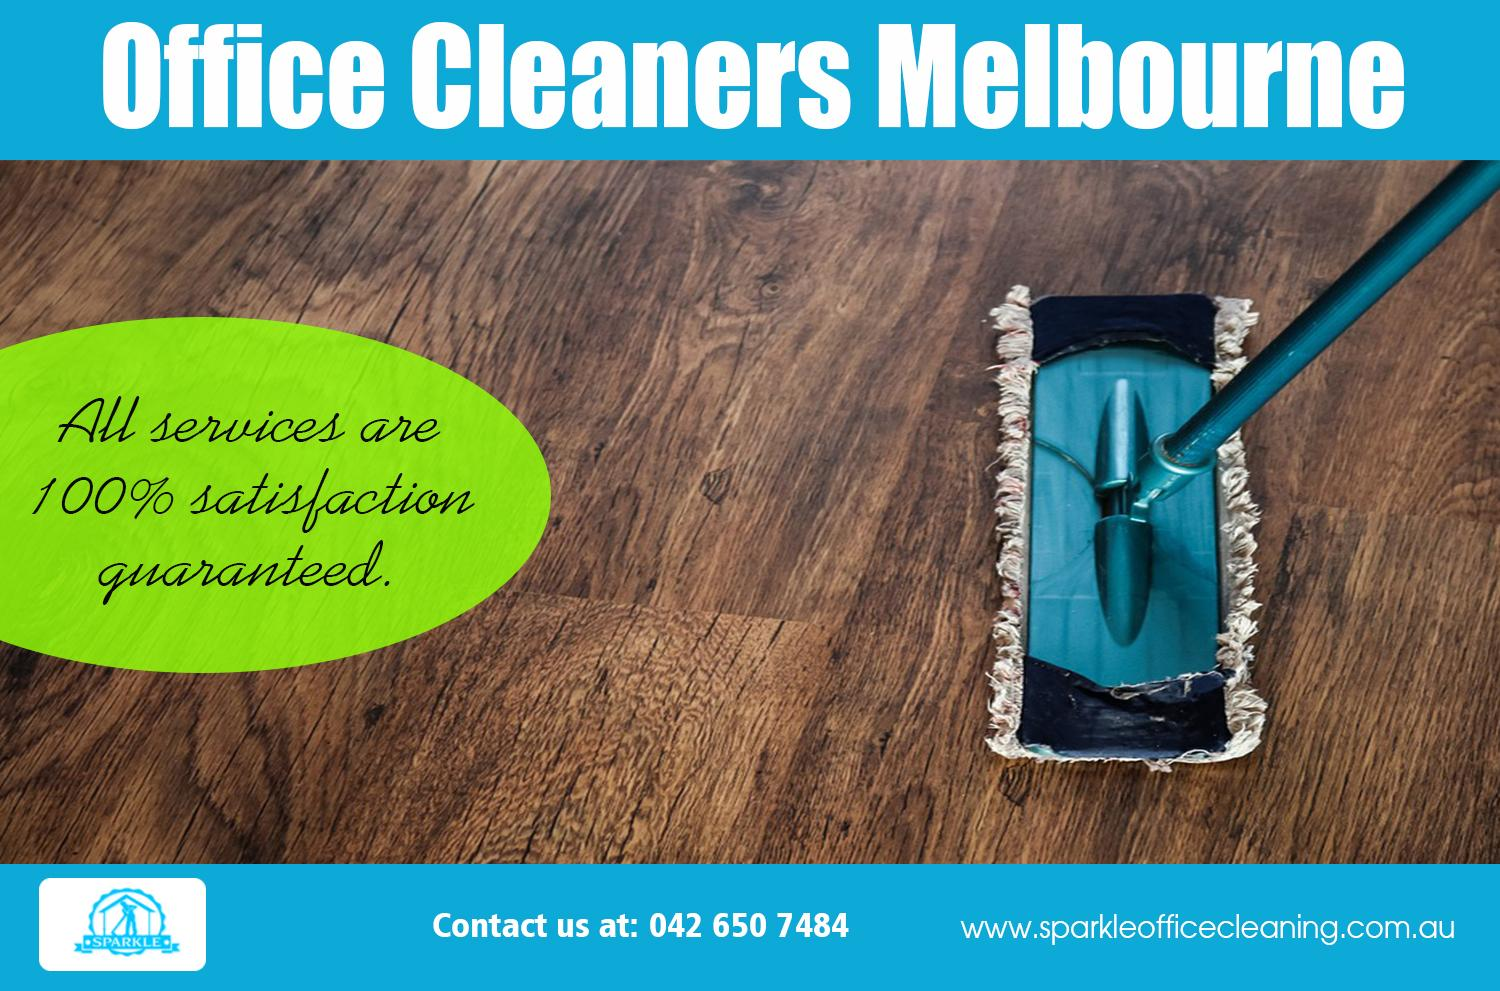 Office Cleaners Melbourne | sparkleofficecleaning.com.au